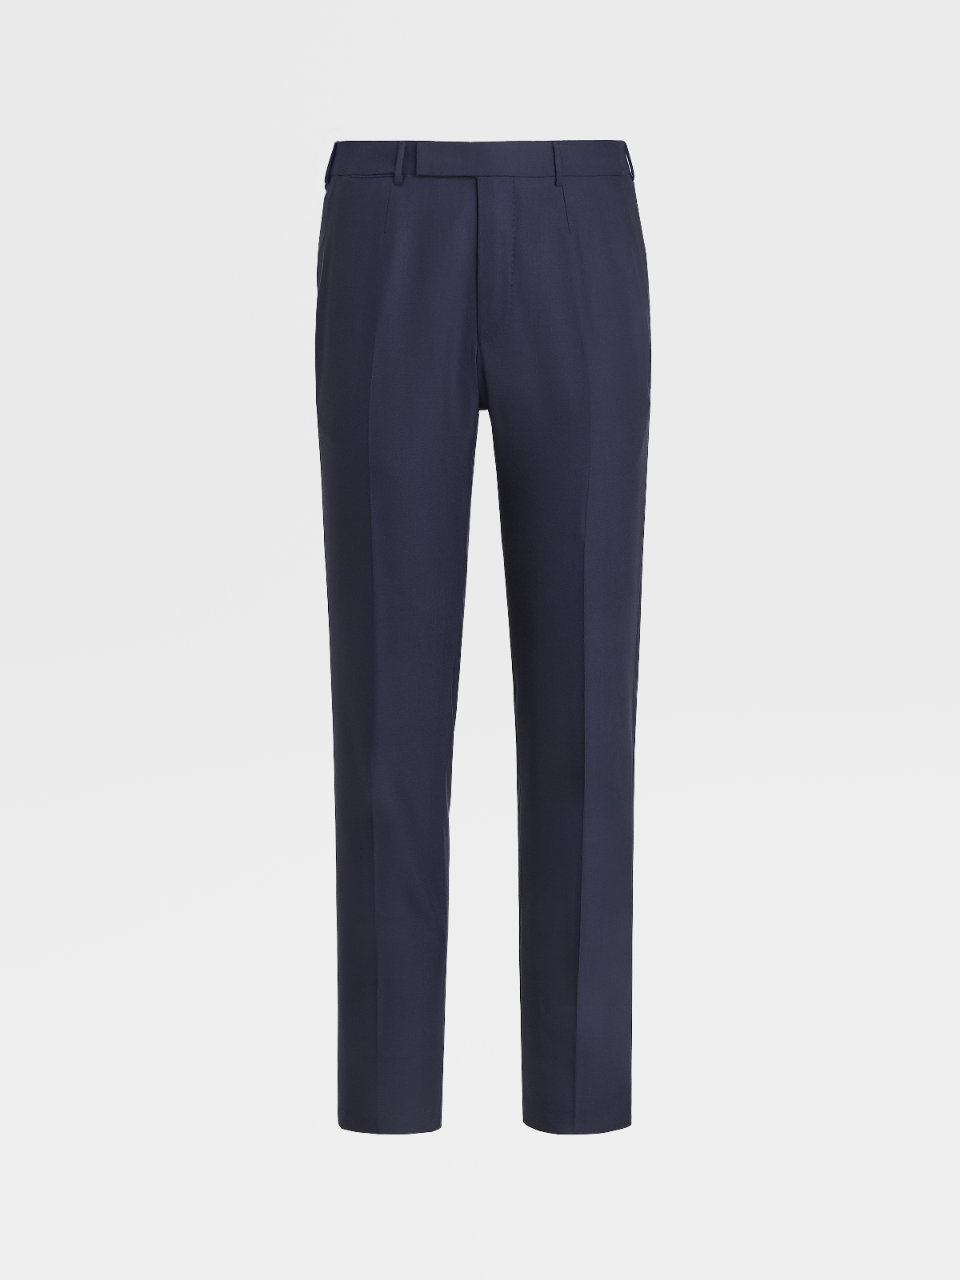 Trofeo Virgin Wool Trousers